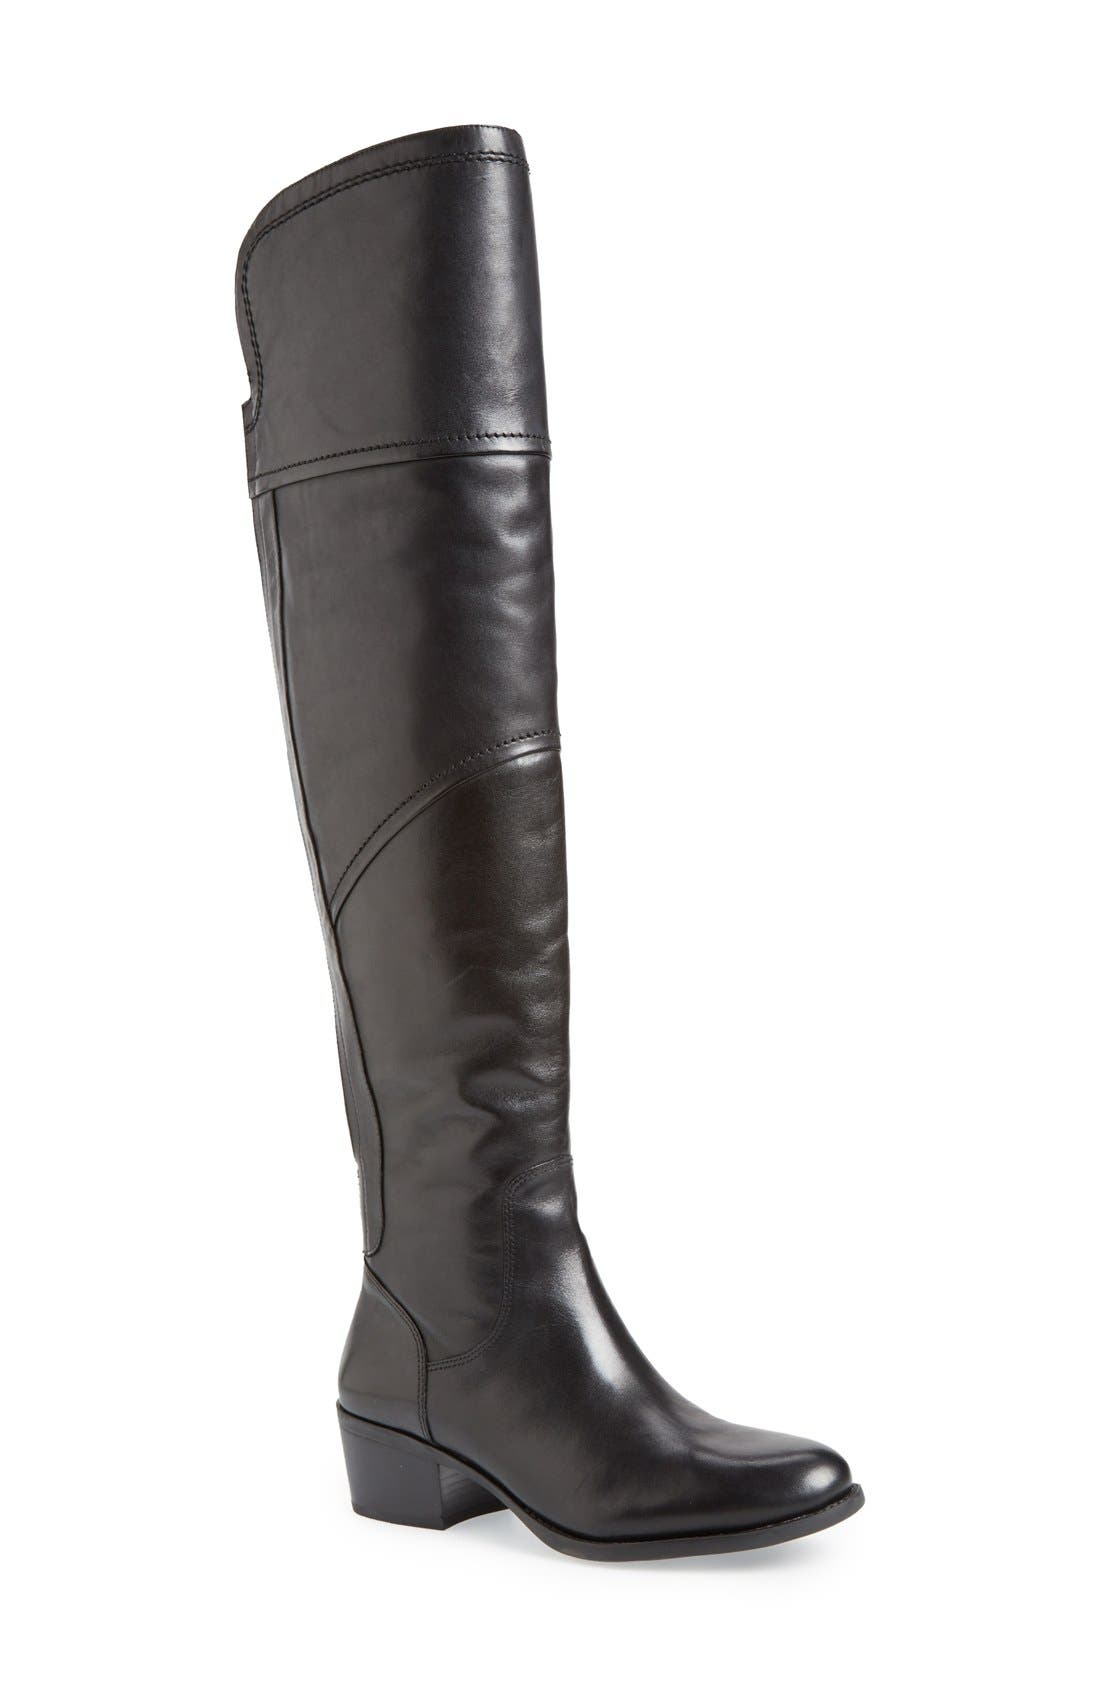 VINCE CAMUTO 'Bernadine' Over the Knee Boot, Main, color, 001